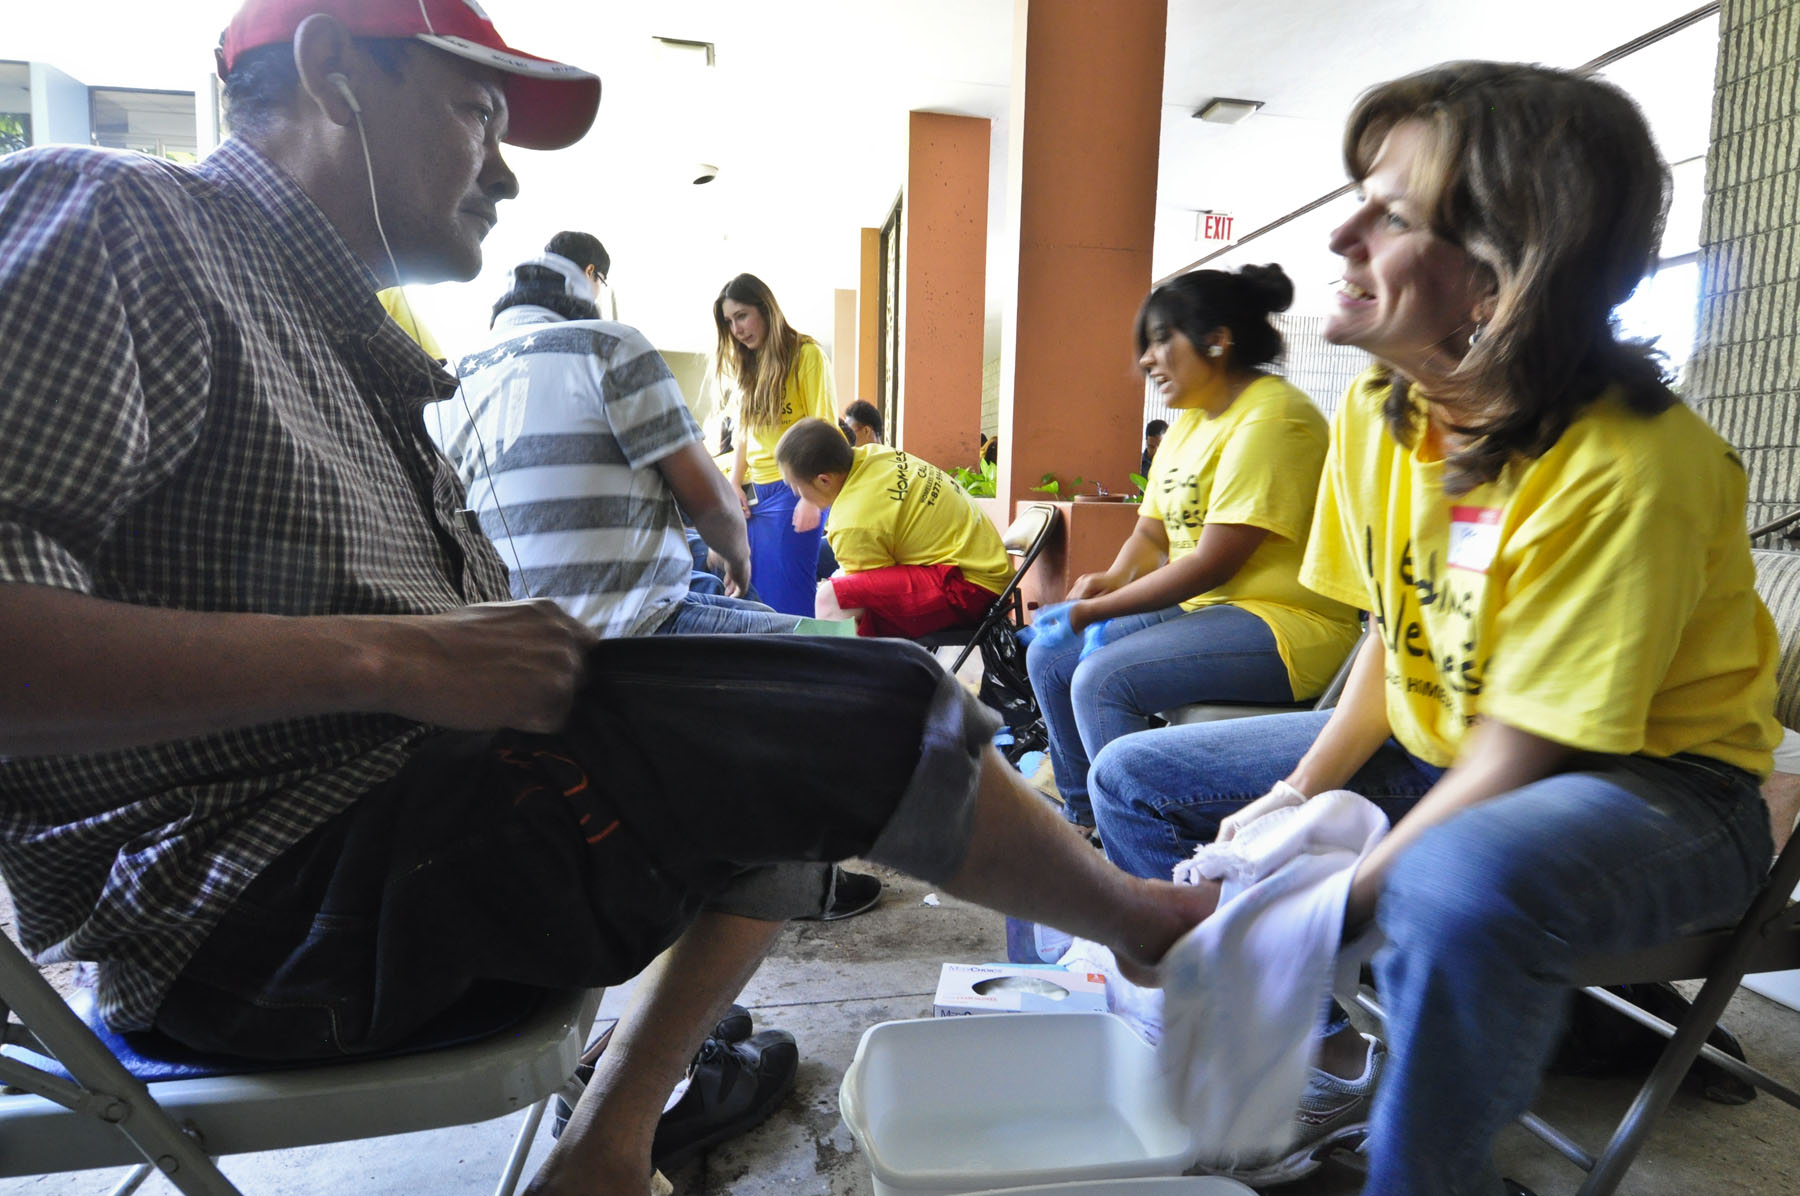 Dr. Cynthia Weems, First Miami pastor, right, washes the feet of a homeless man